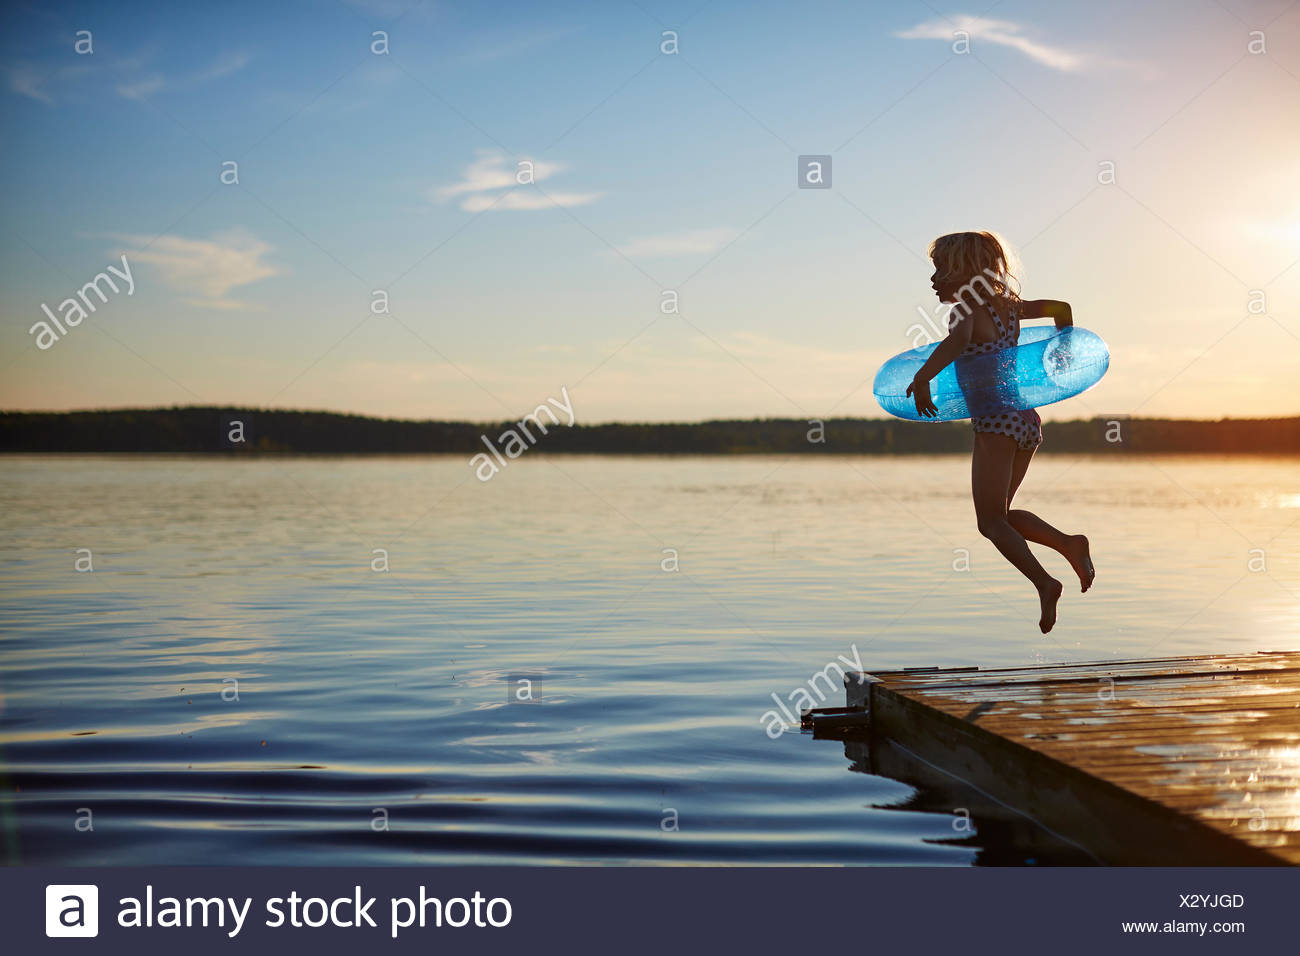 Girl jumping off a pier - Stock Image